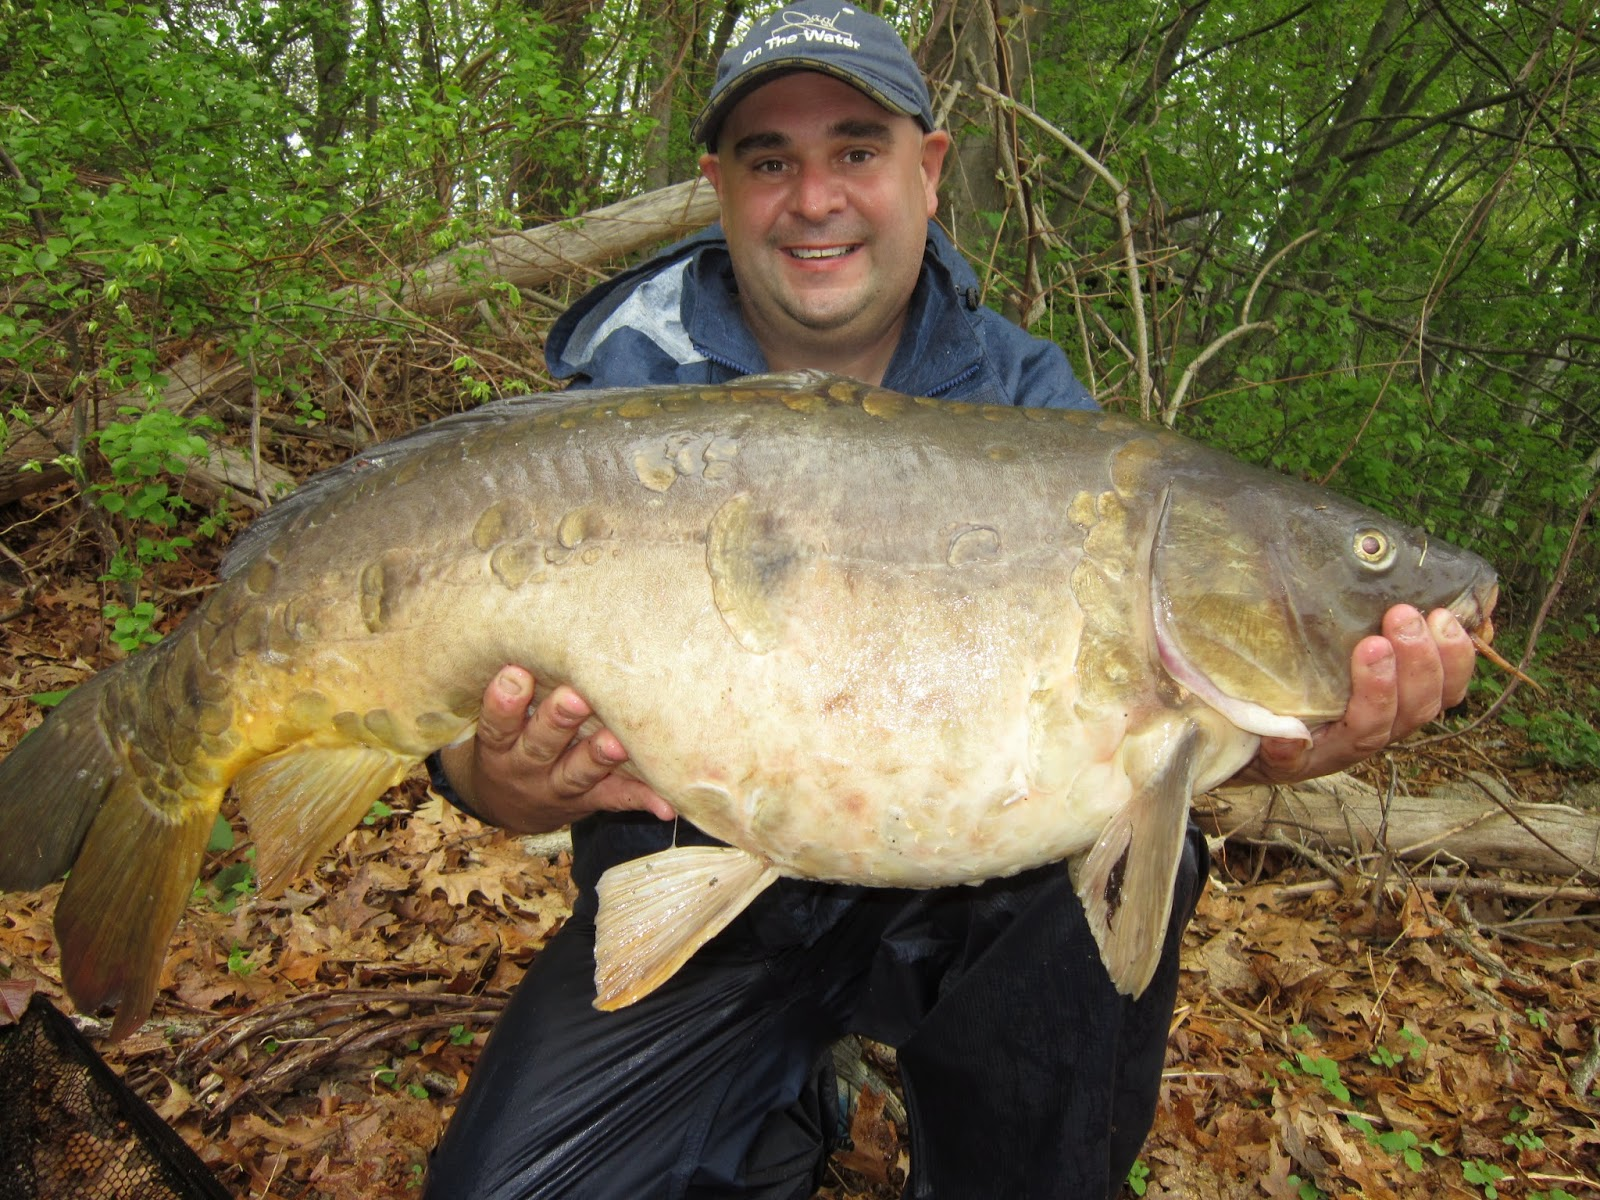 Twenty eight pound carp